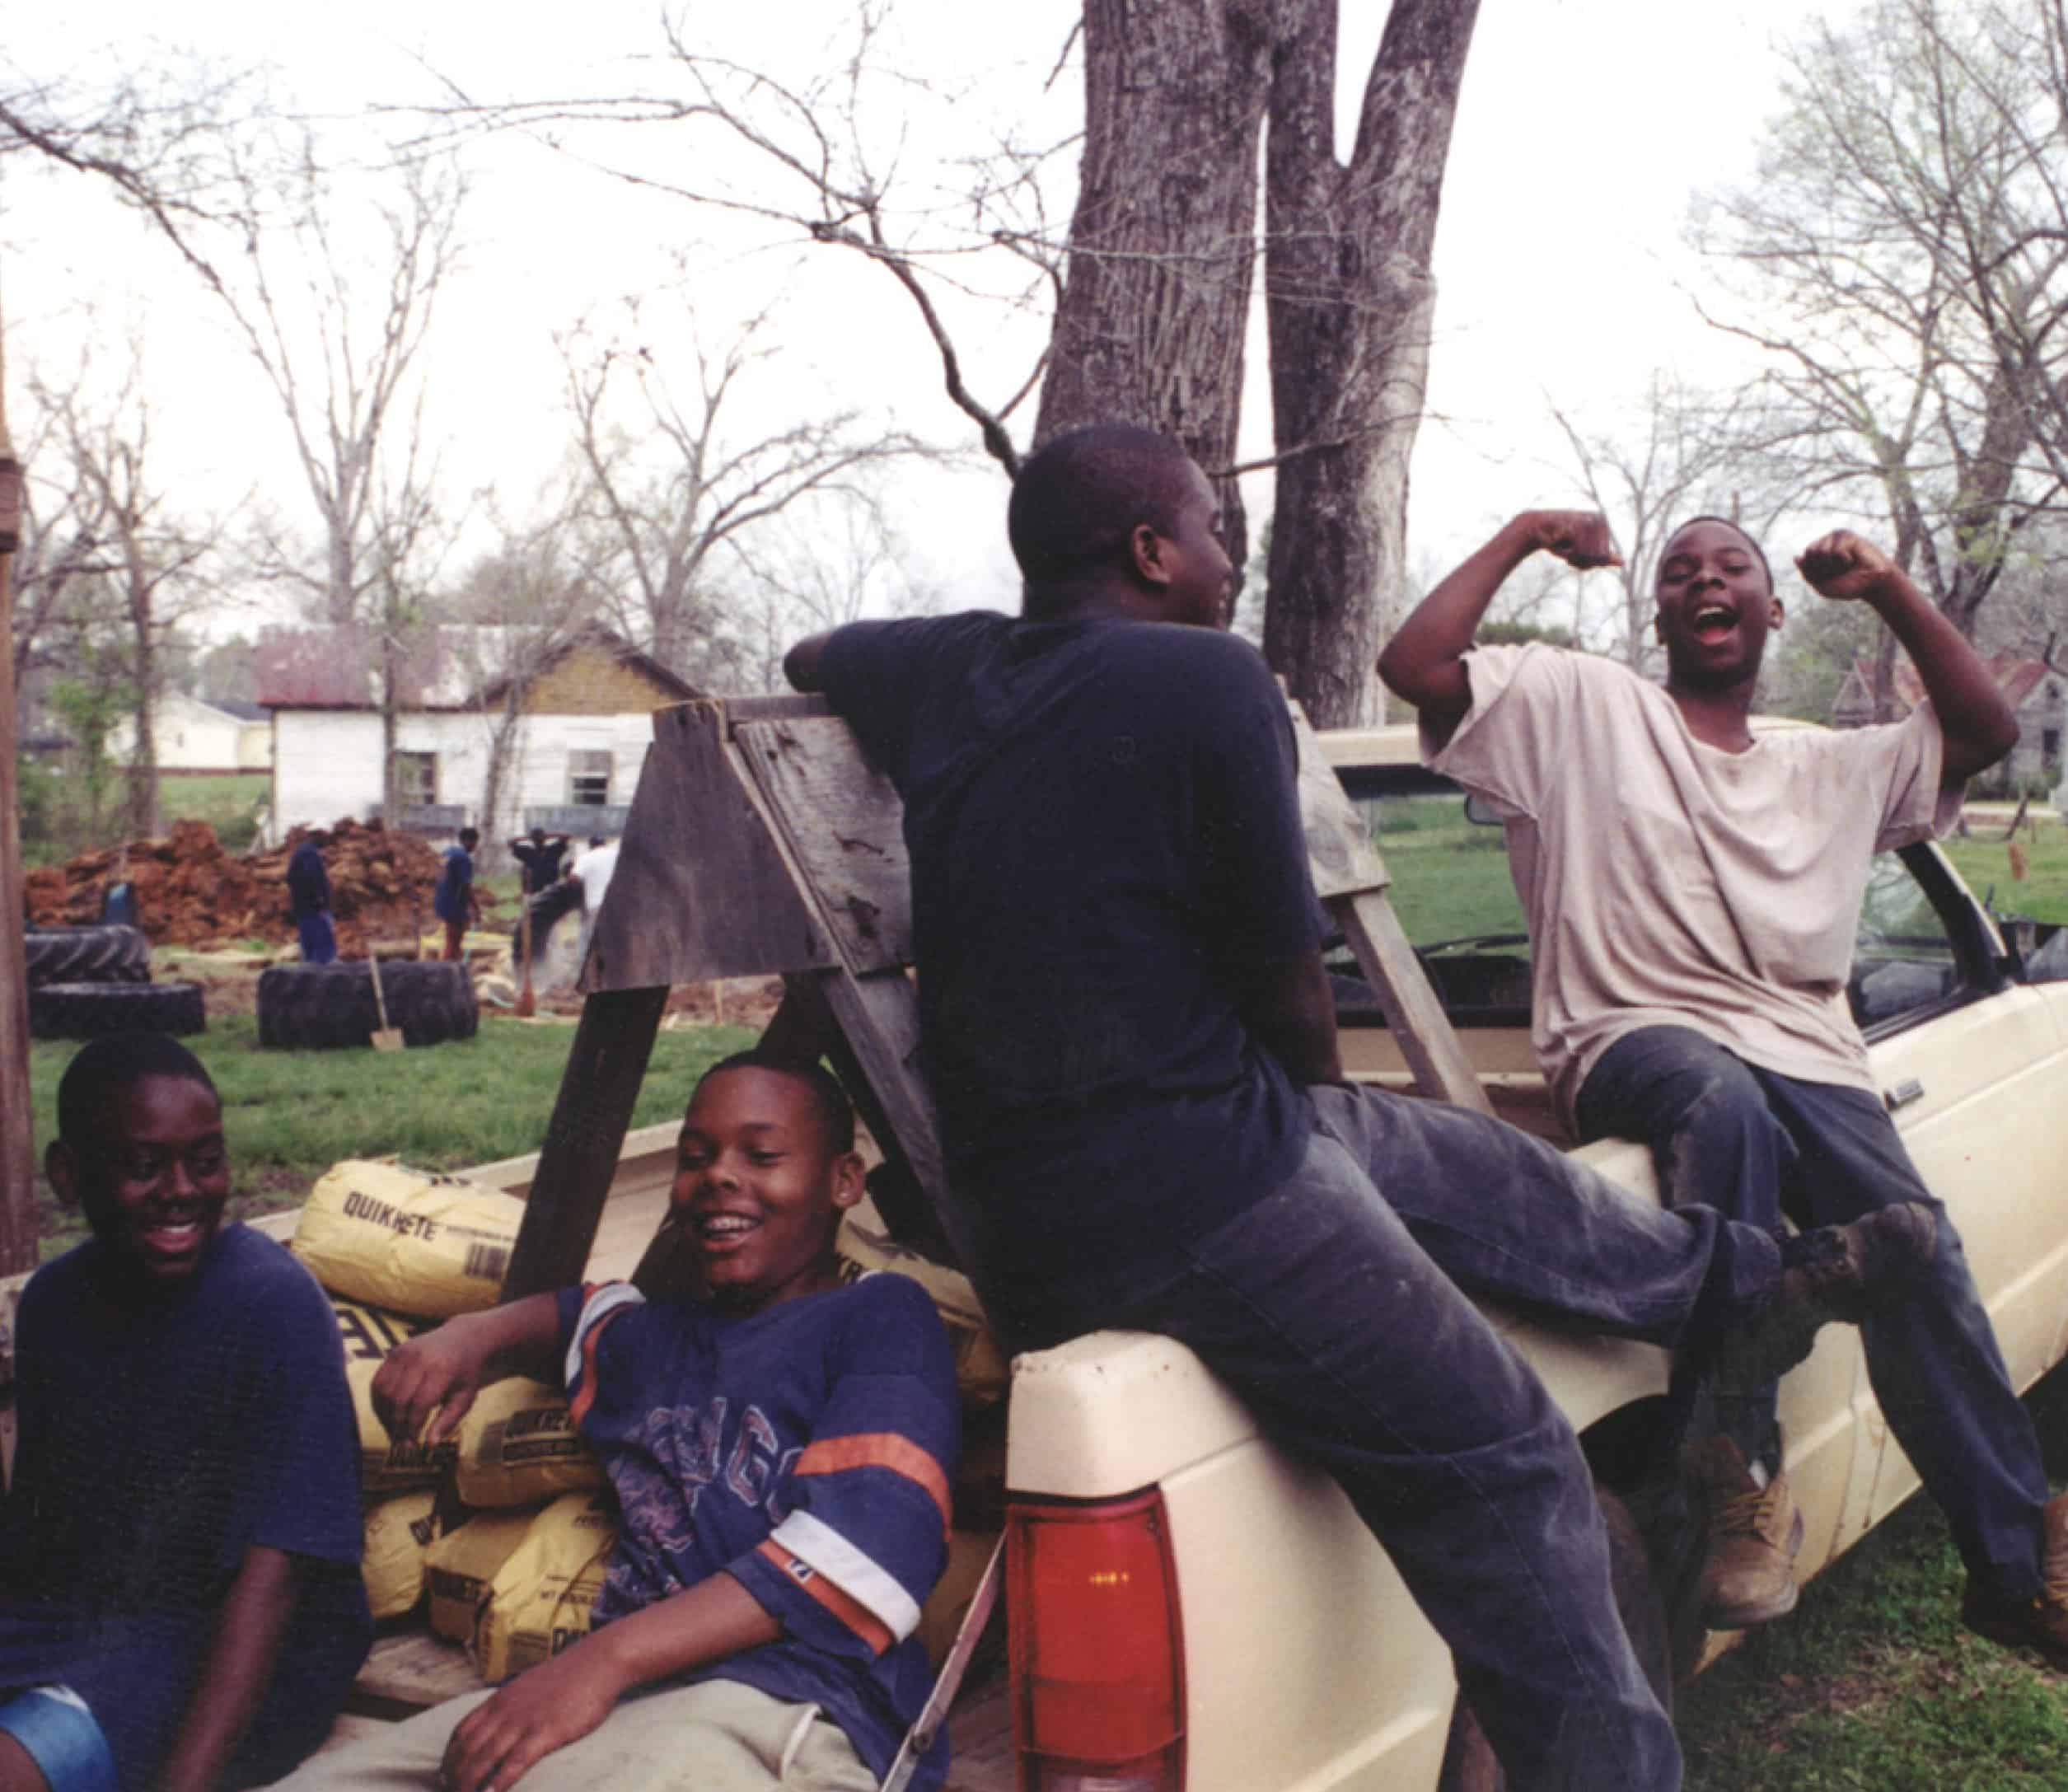 kids sit in the back of pickup truck and pose for the camera